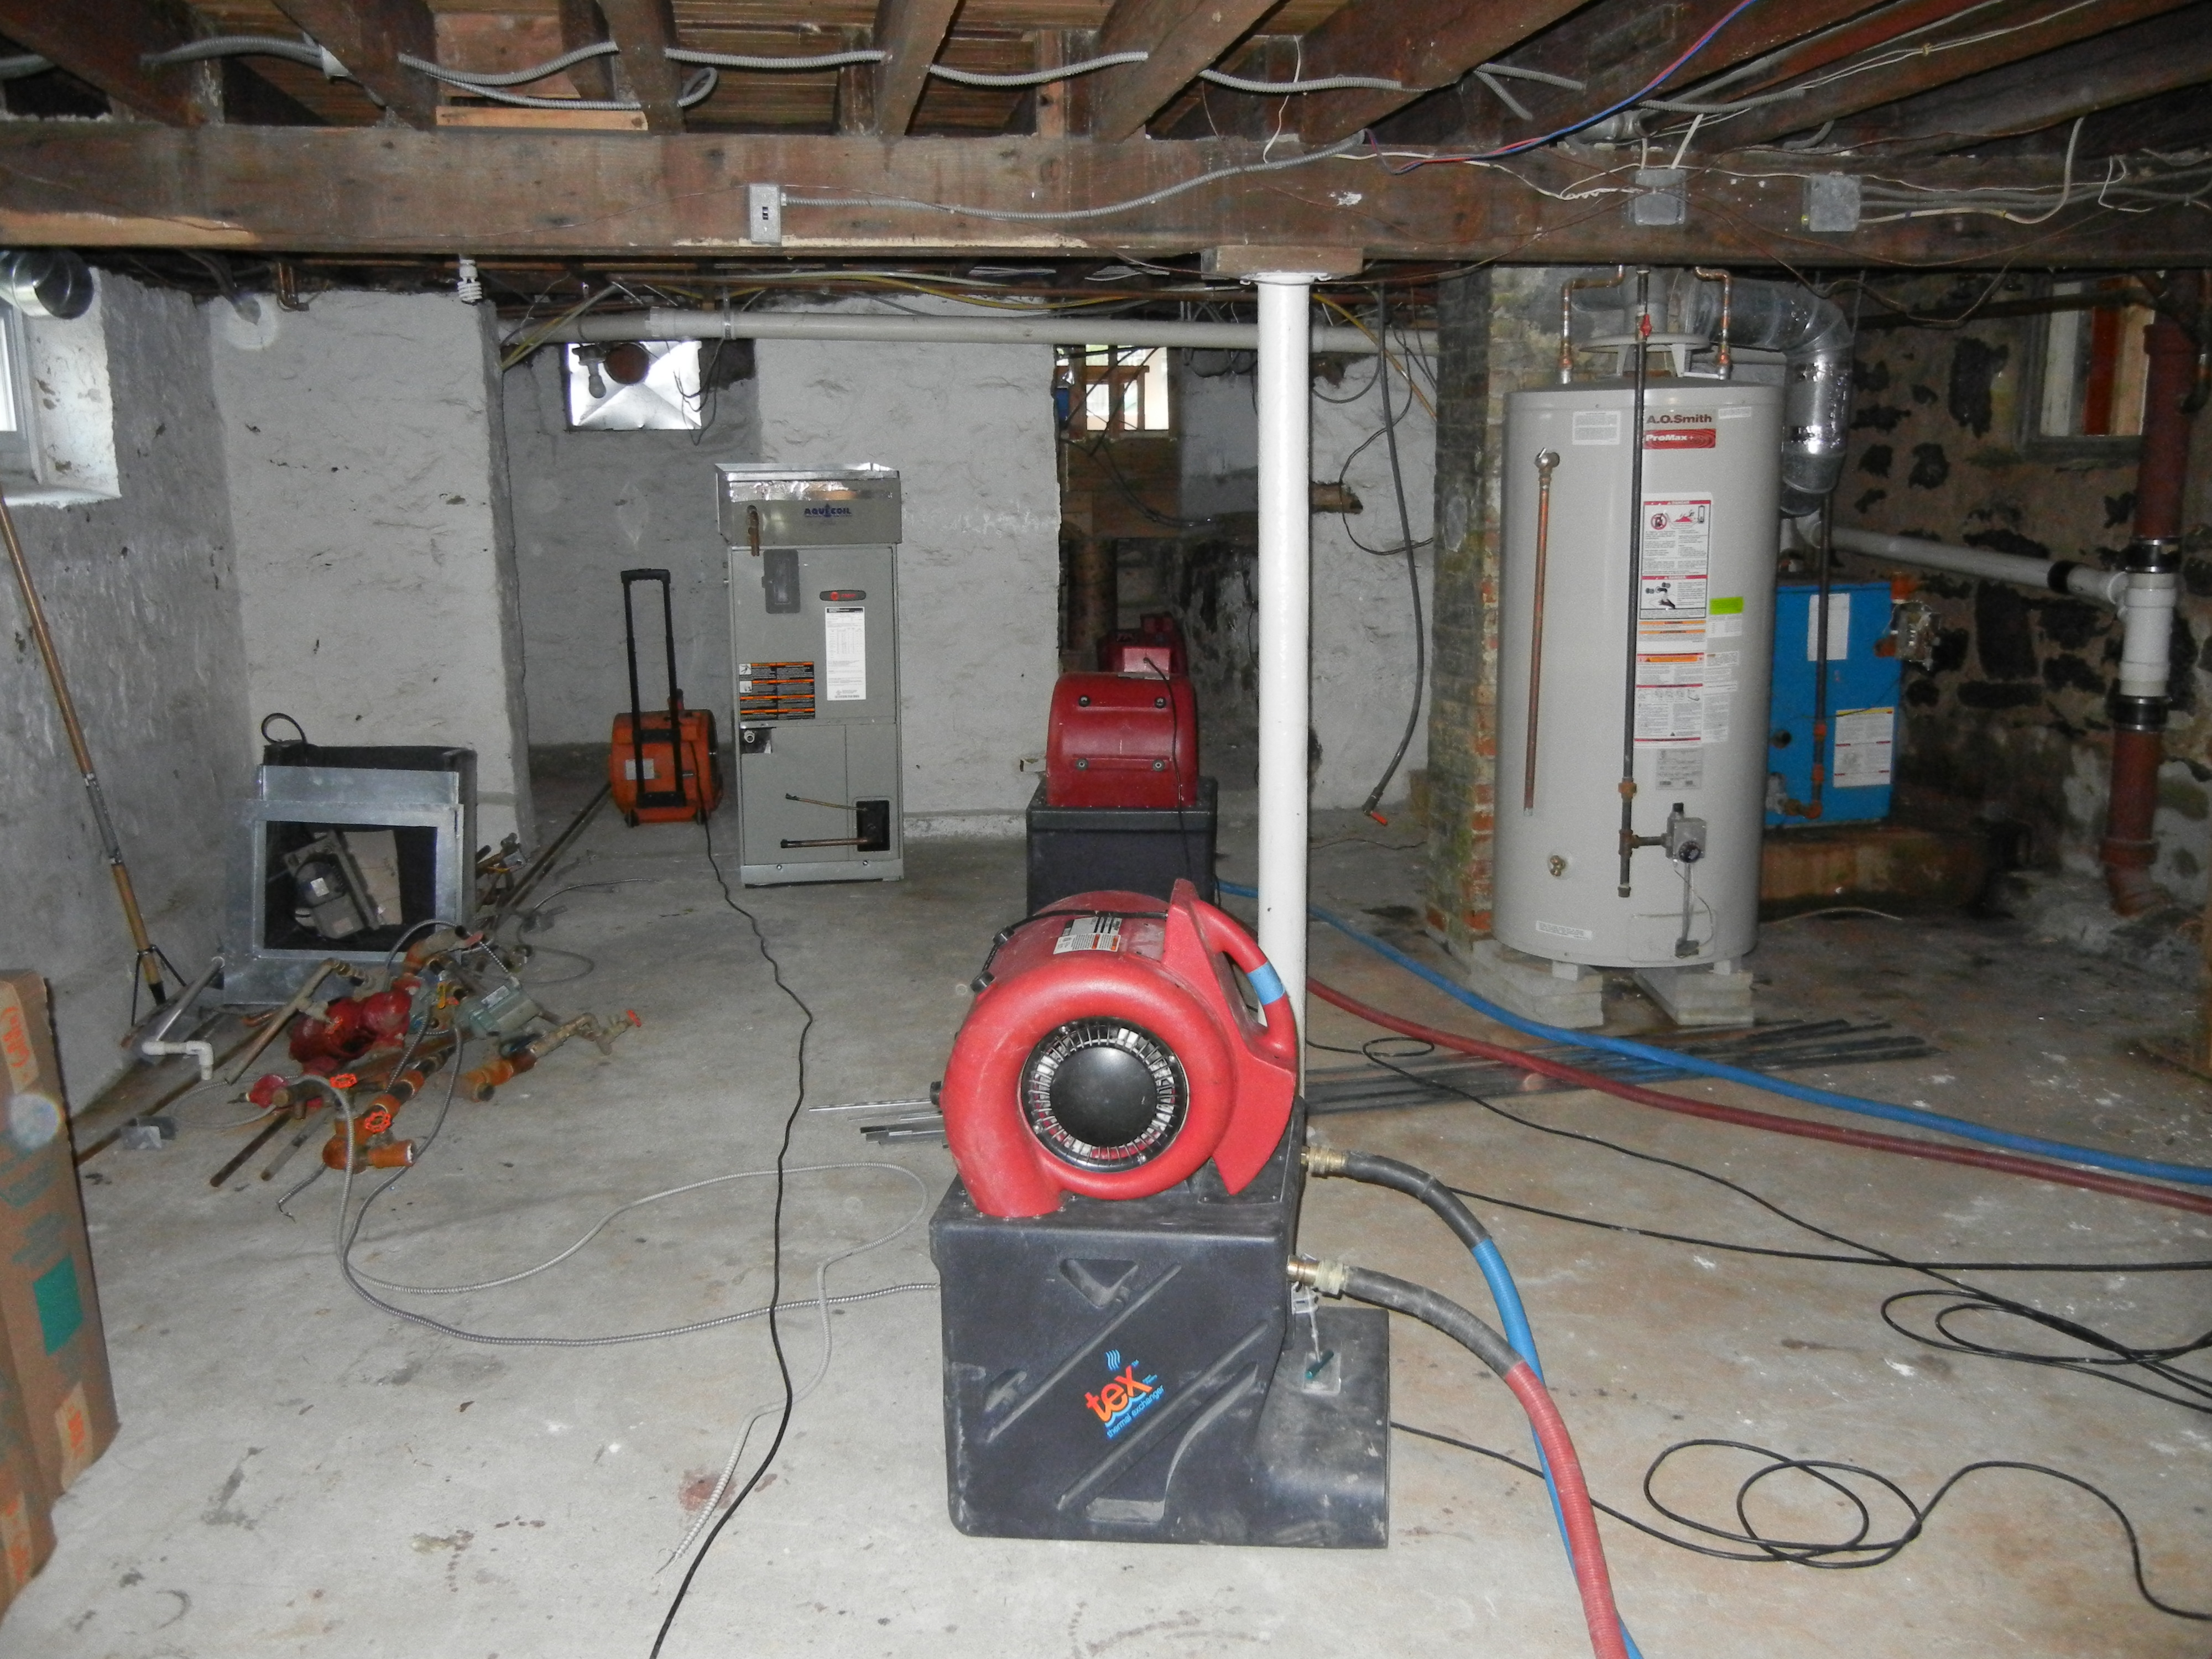 drying equipment to dry out basement that had been flooded